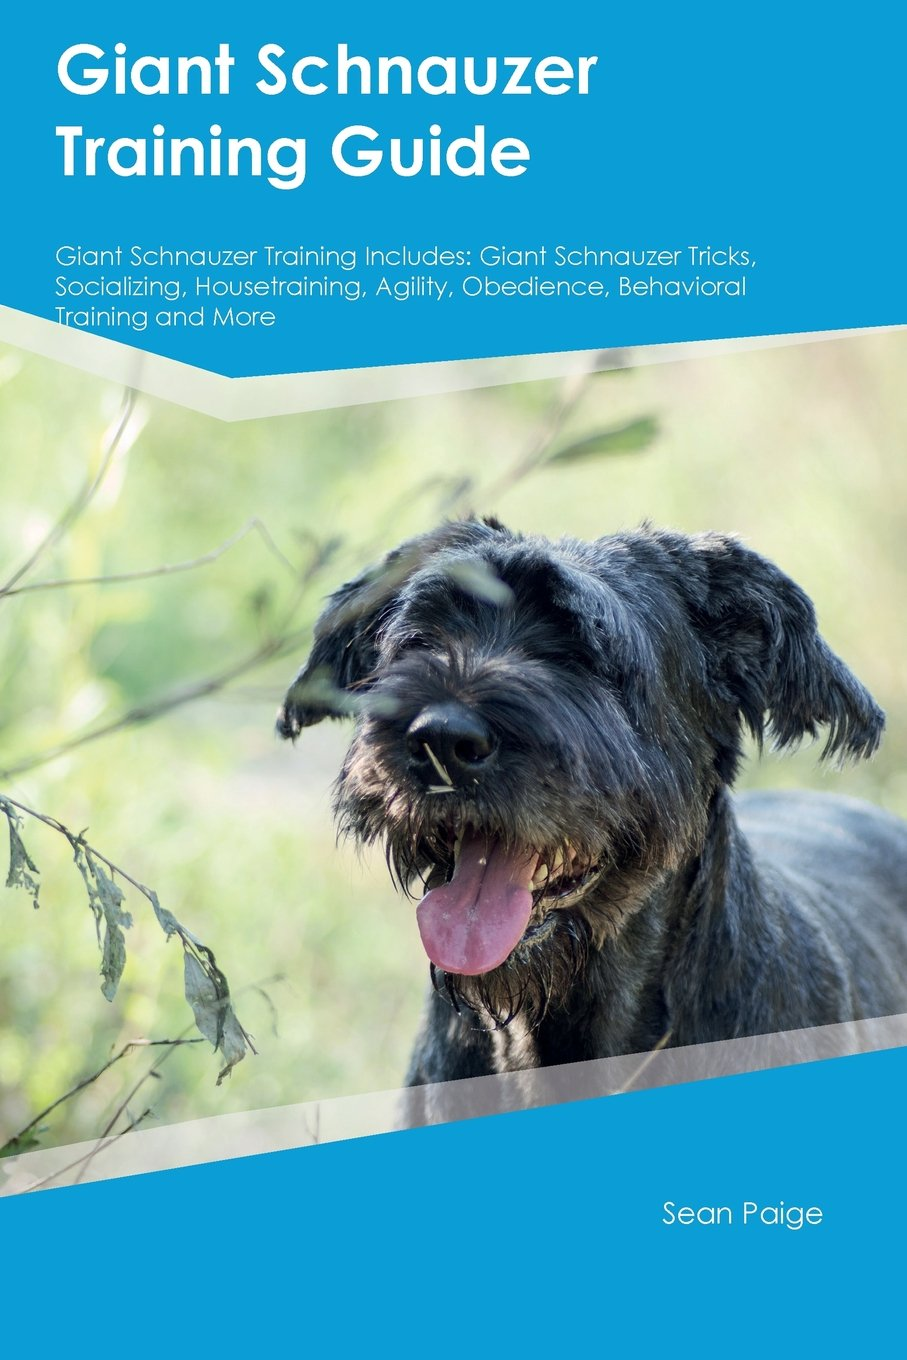 Giant-Schnauzer-Training-Guide-Giant-Schnauzer-Training-Includes-Giant-Schnauzer-Tricks-Socializing-Housetraining-Agility-Obedience-Behavioral-Training-and-More